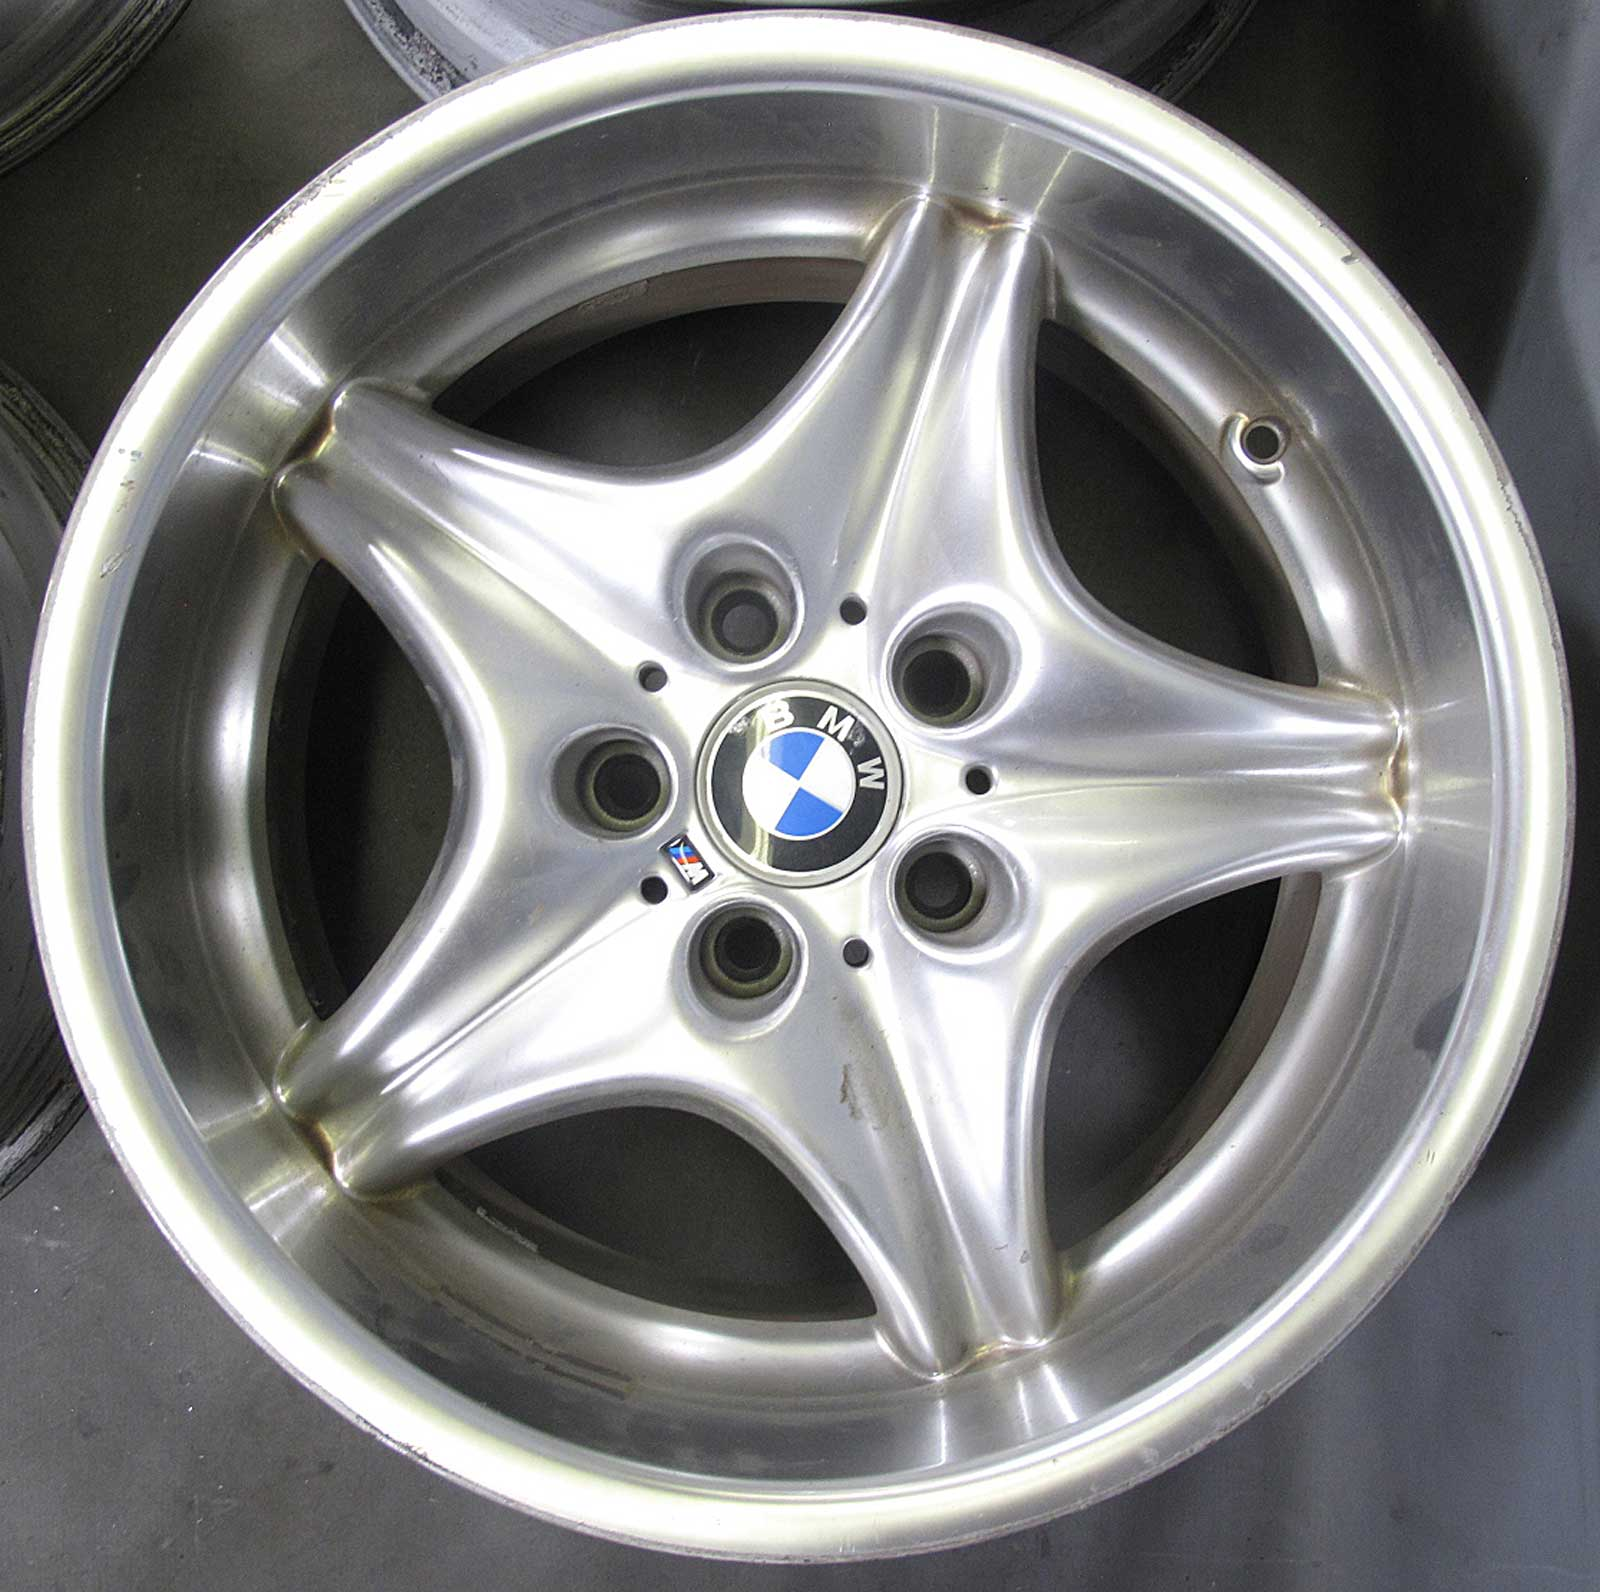 "Bmw Z3 M Wheels: 1998-2002 BMW M Roadster Coupe Factory 17"" Staggered Style"